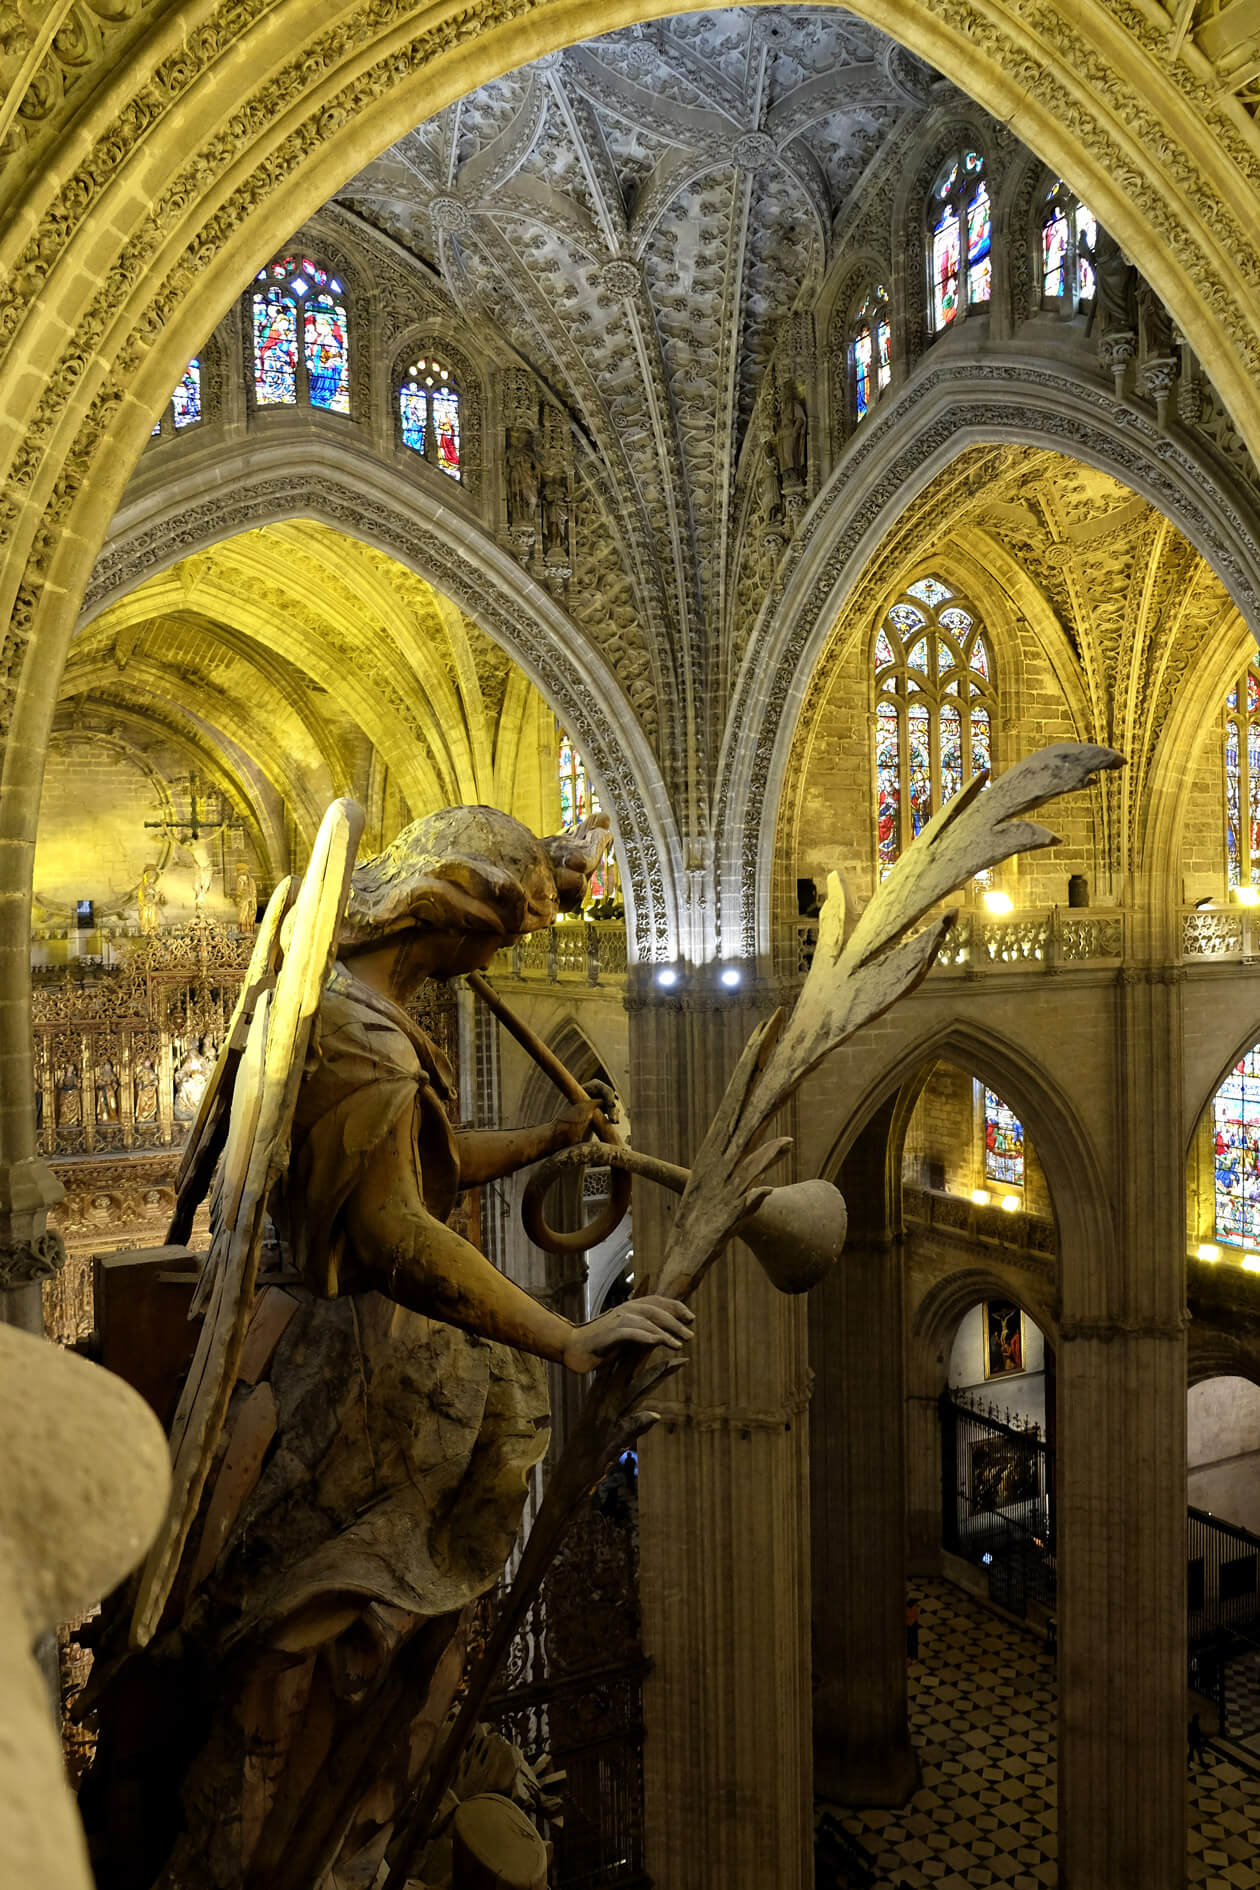 Up with the angels inside the cathedral